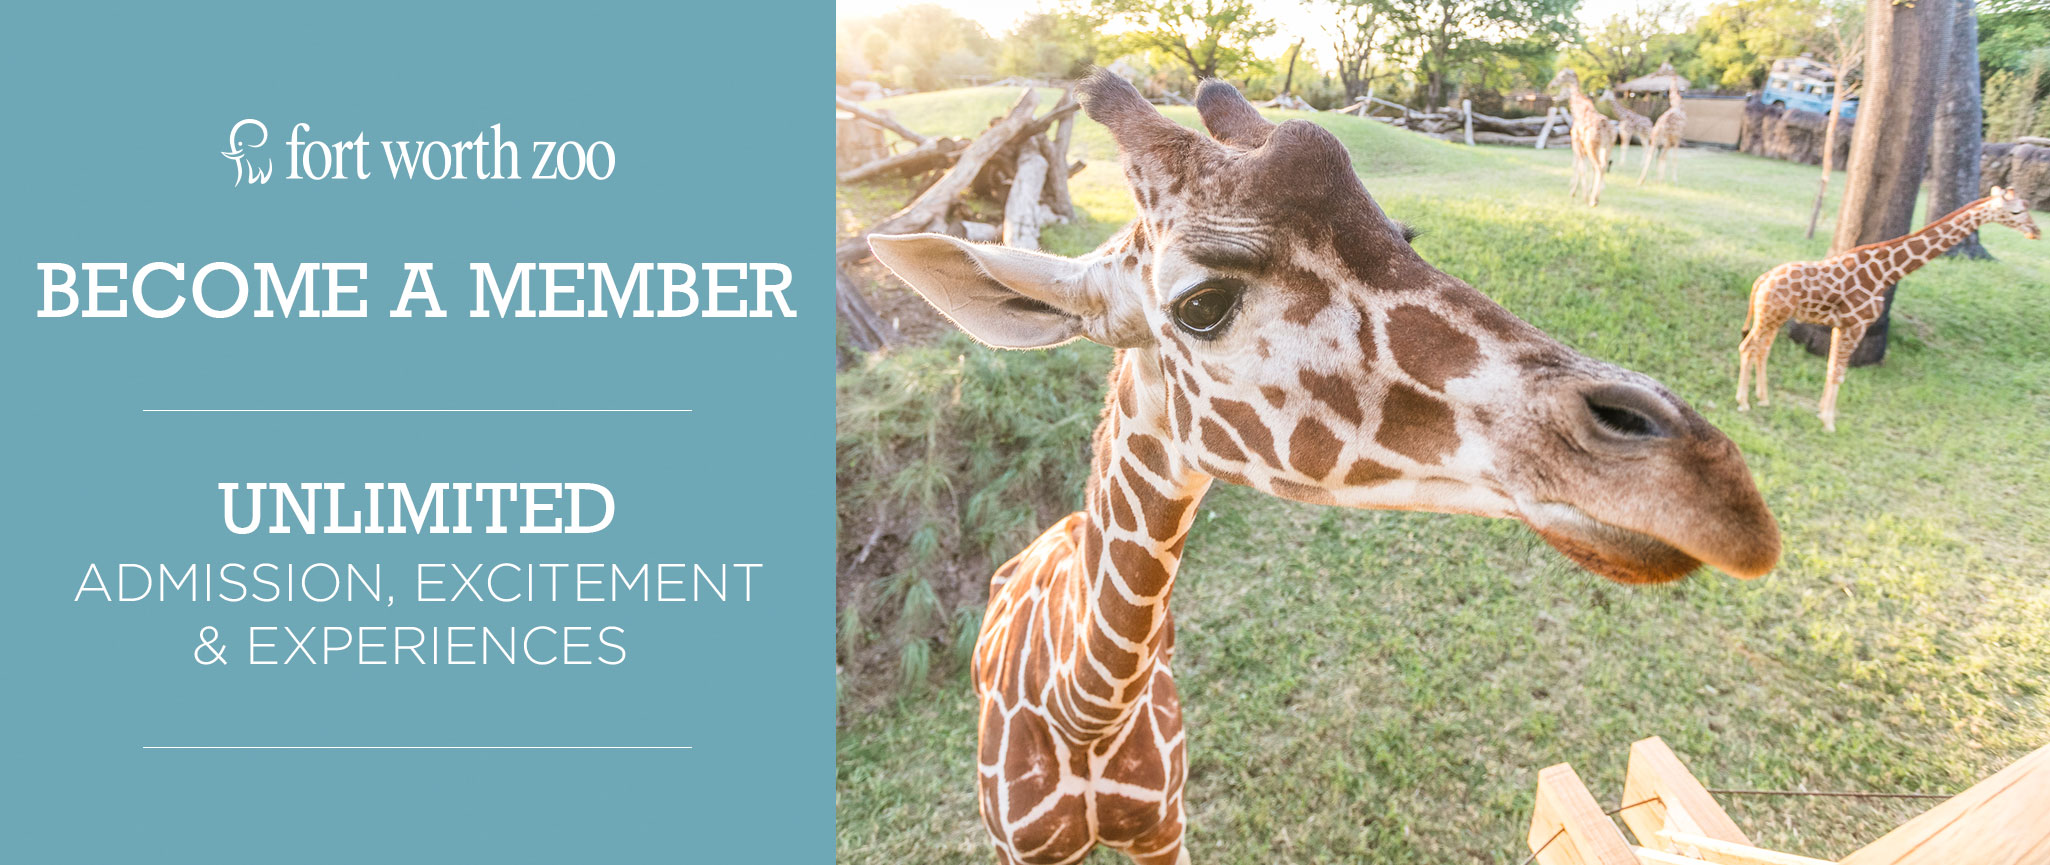 Fort Worth Zoo membership